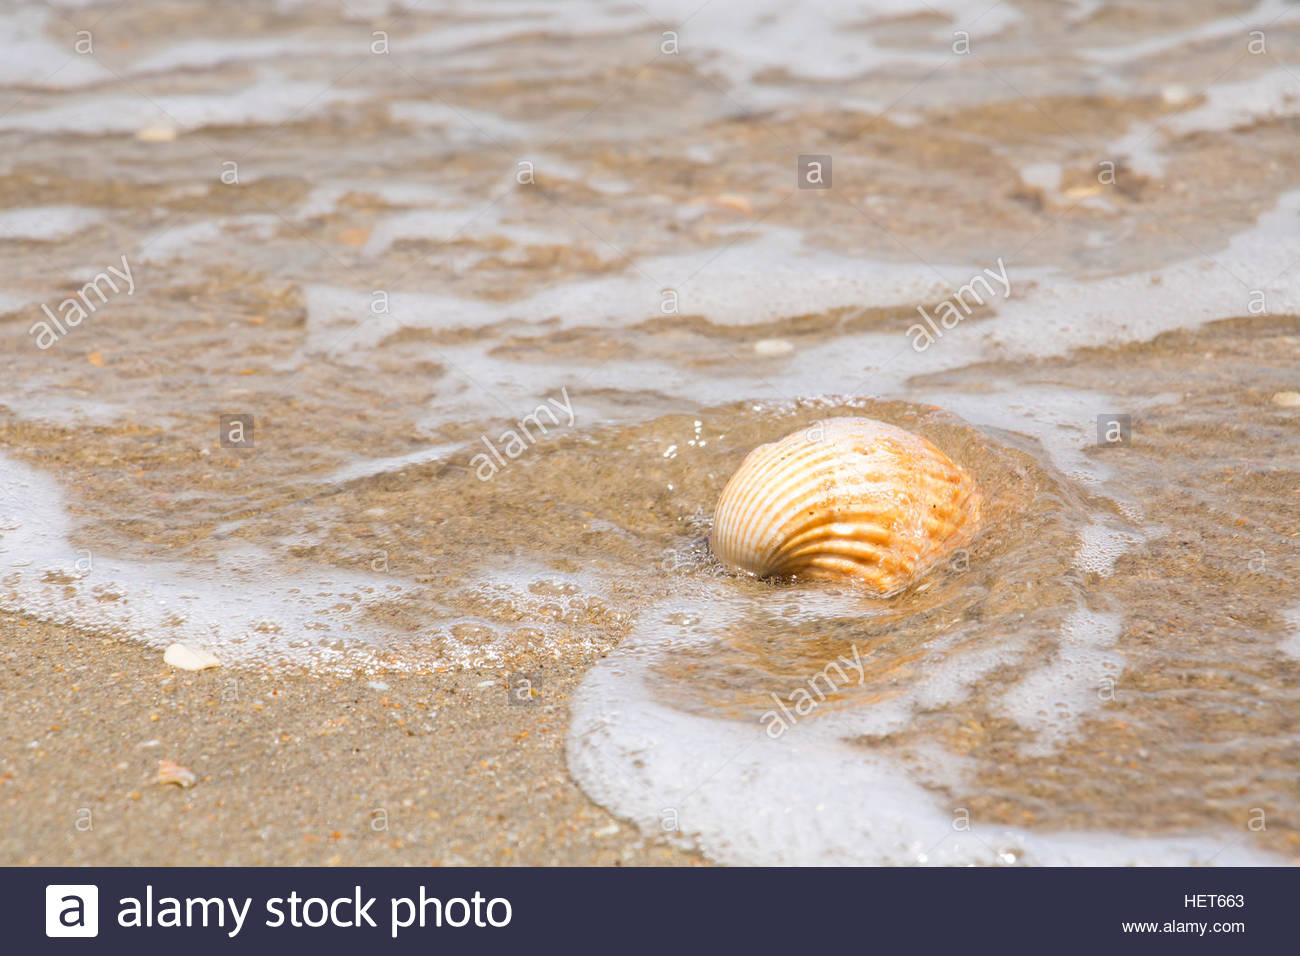 Plage de sable à Shell, gros plan nature plage beauté naturelle nature abstraite close up plage sable Photo Stock